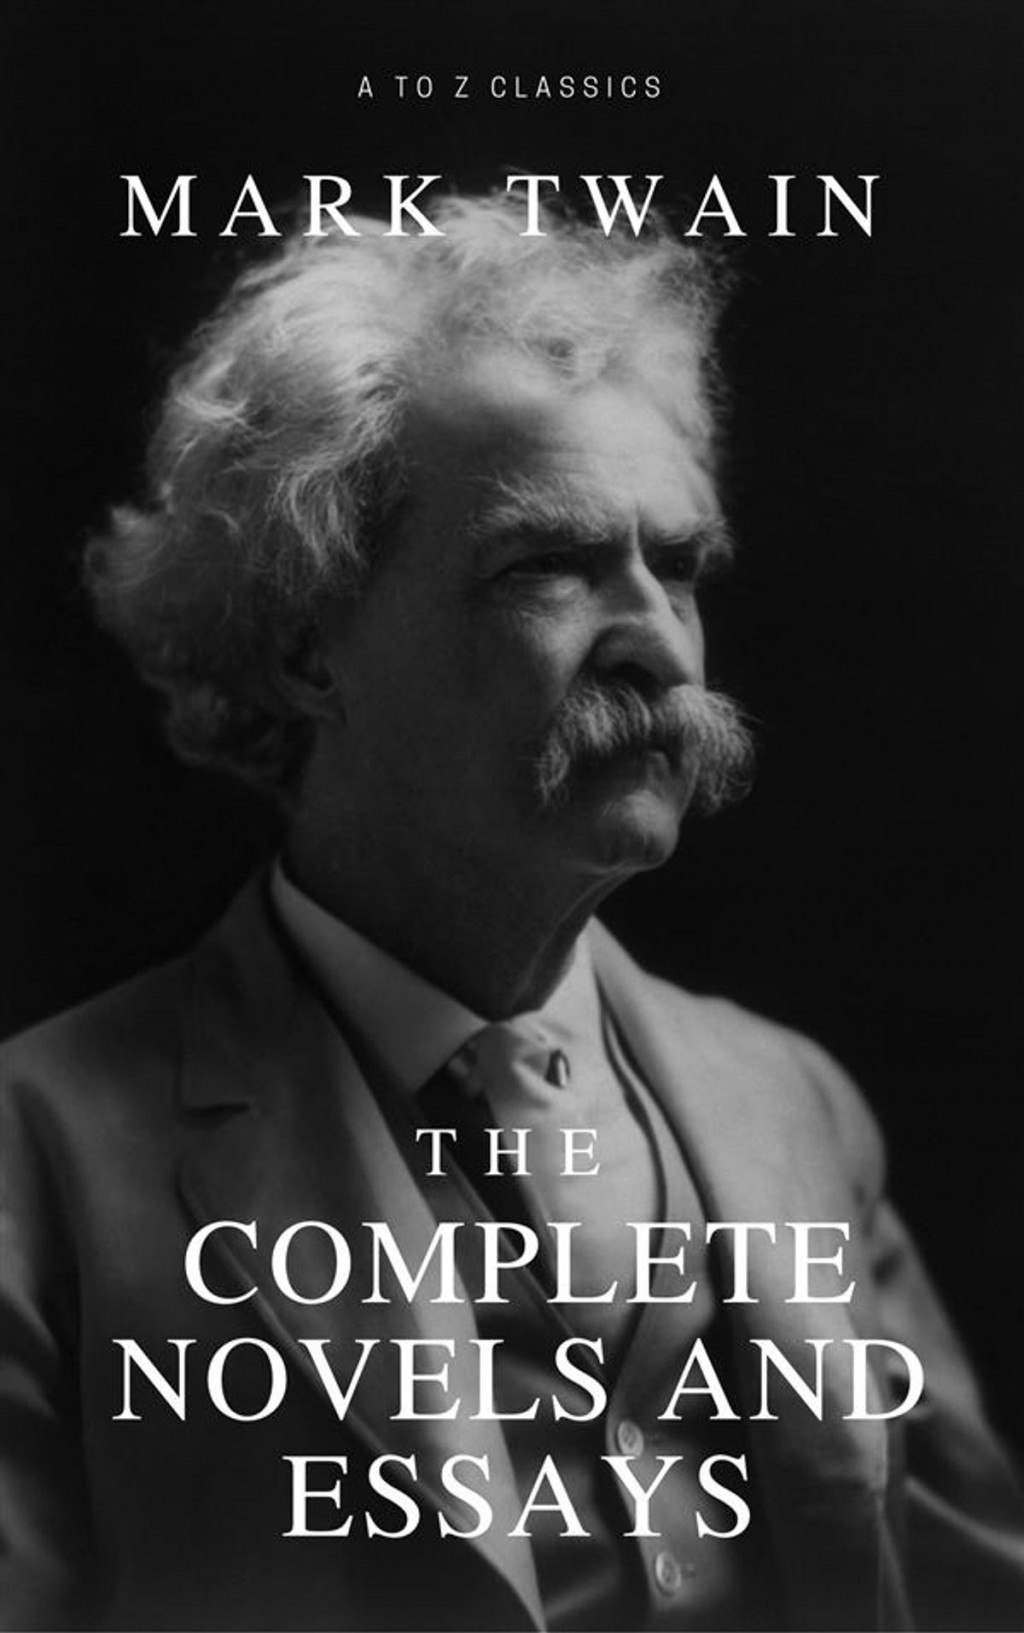 009 Essay Example Mark Twain The Complete Novels And Surprising Essays Pdf On Writing Nonfiction Large